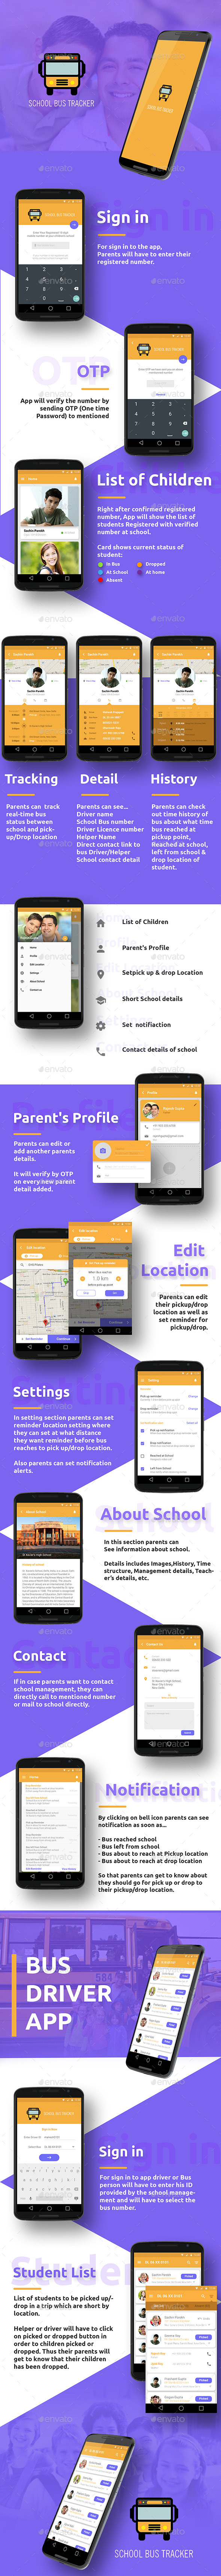 Bus Tracking Mobile App UI (User Interfaces)